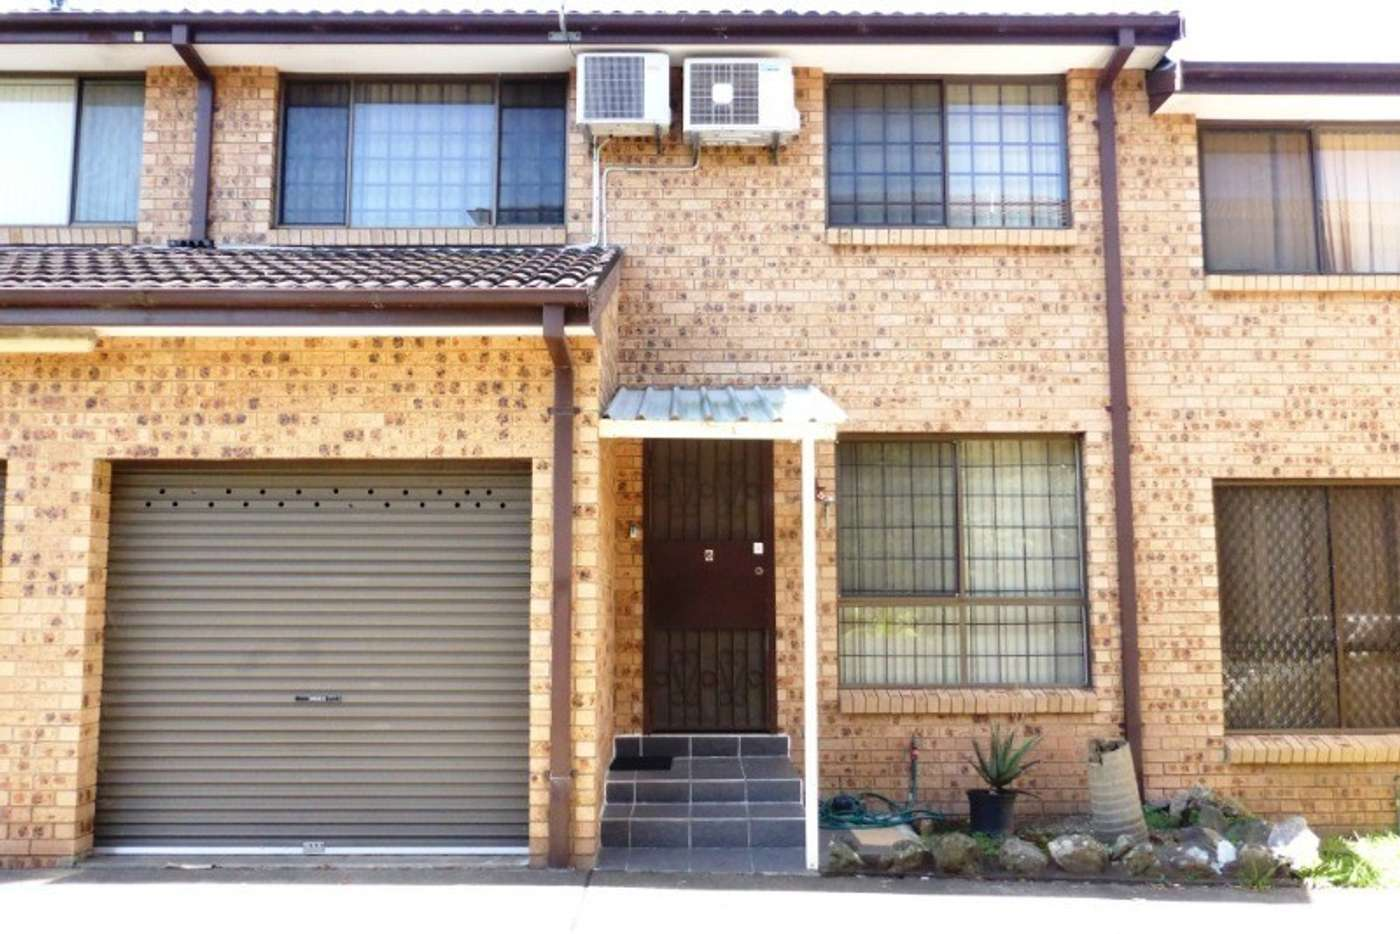 Main view of Homely townhouse listing, 6/11 Church Street, Cabramatta NSW 2166